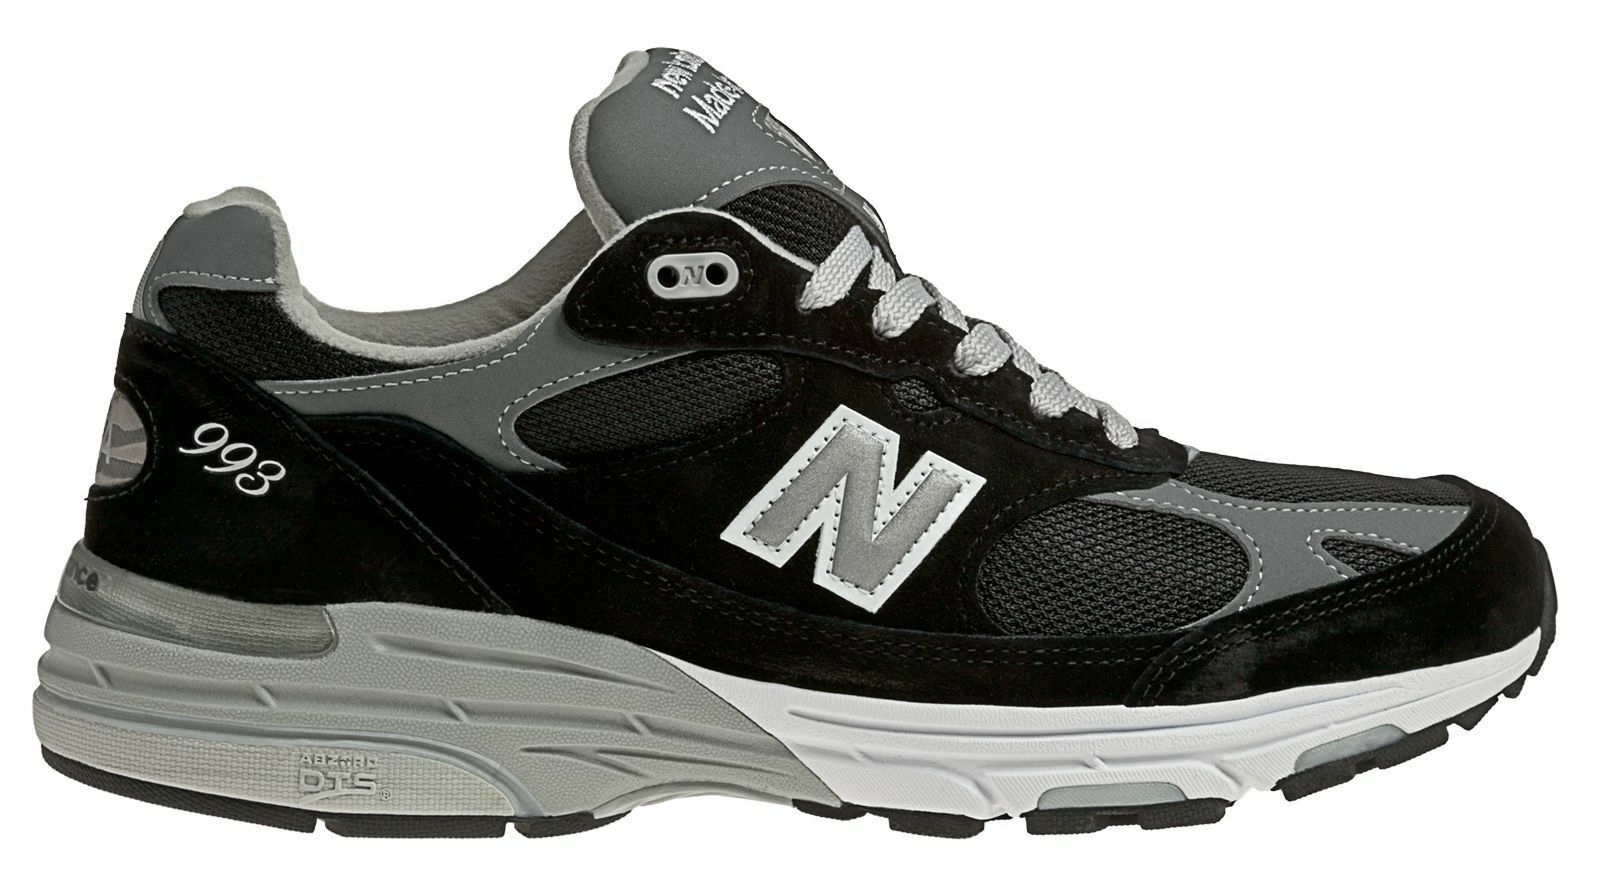 New Balance Male Men's Classic 993 Running Comfort Adult Black With Grey